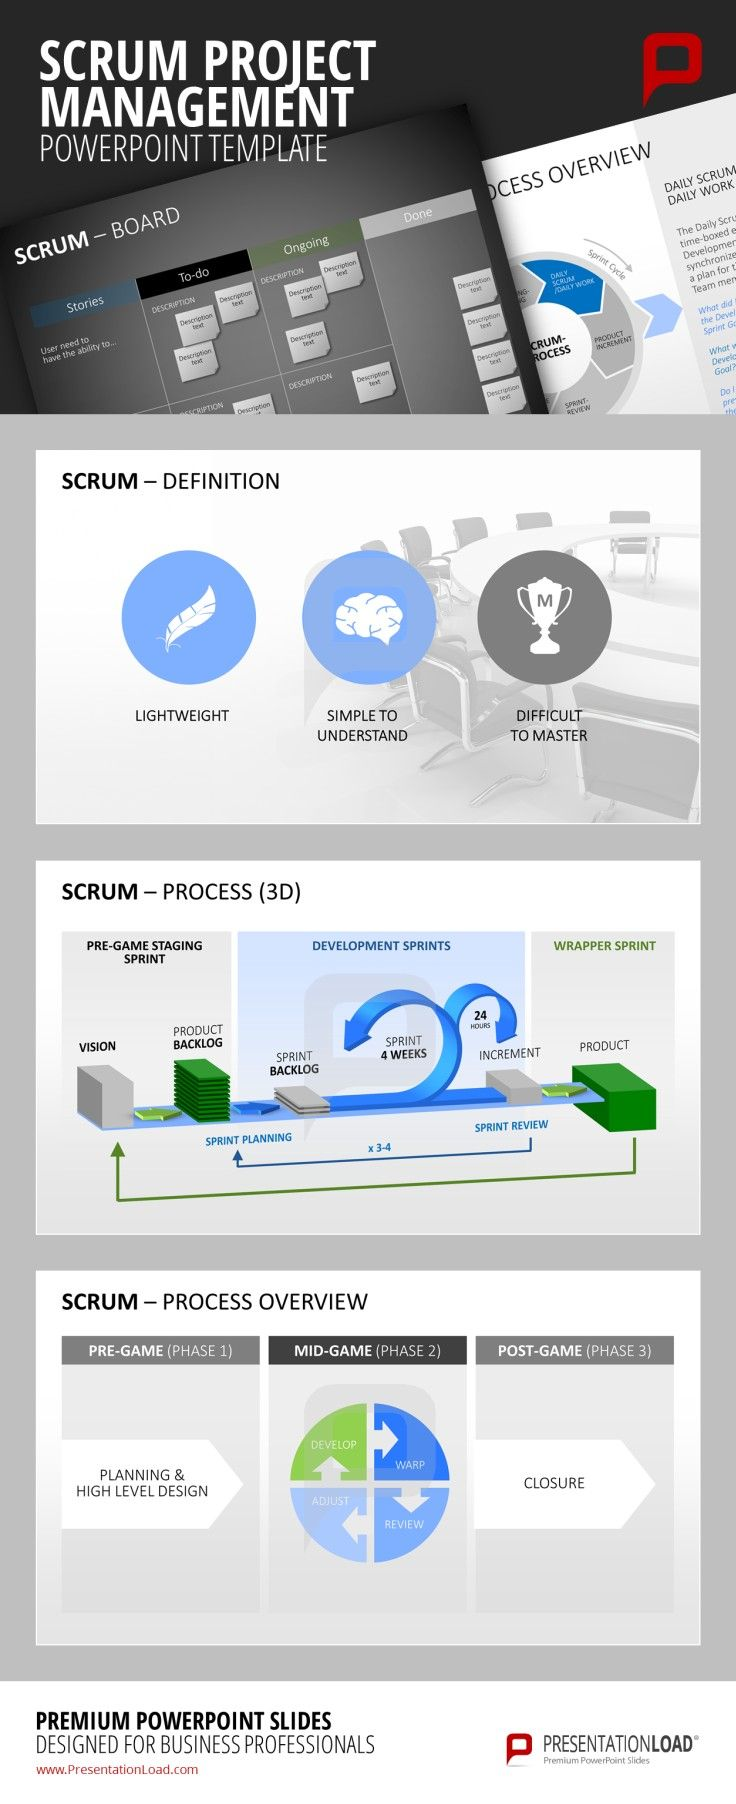 Scrum project management powerpoint templates presentationload http scrum project management powerpoint templates presentationload httppresentationloadscrum toolbox powerpoint templateml toneelgroepblik Gallery